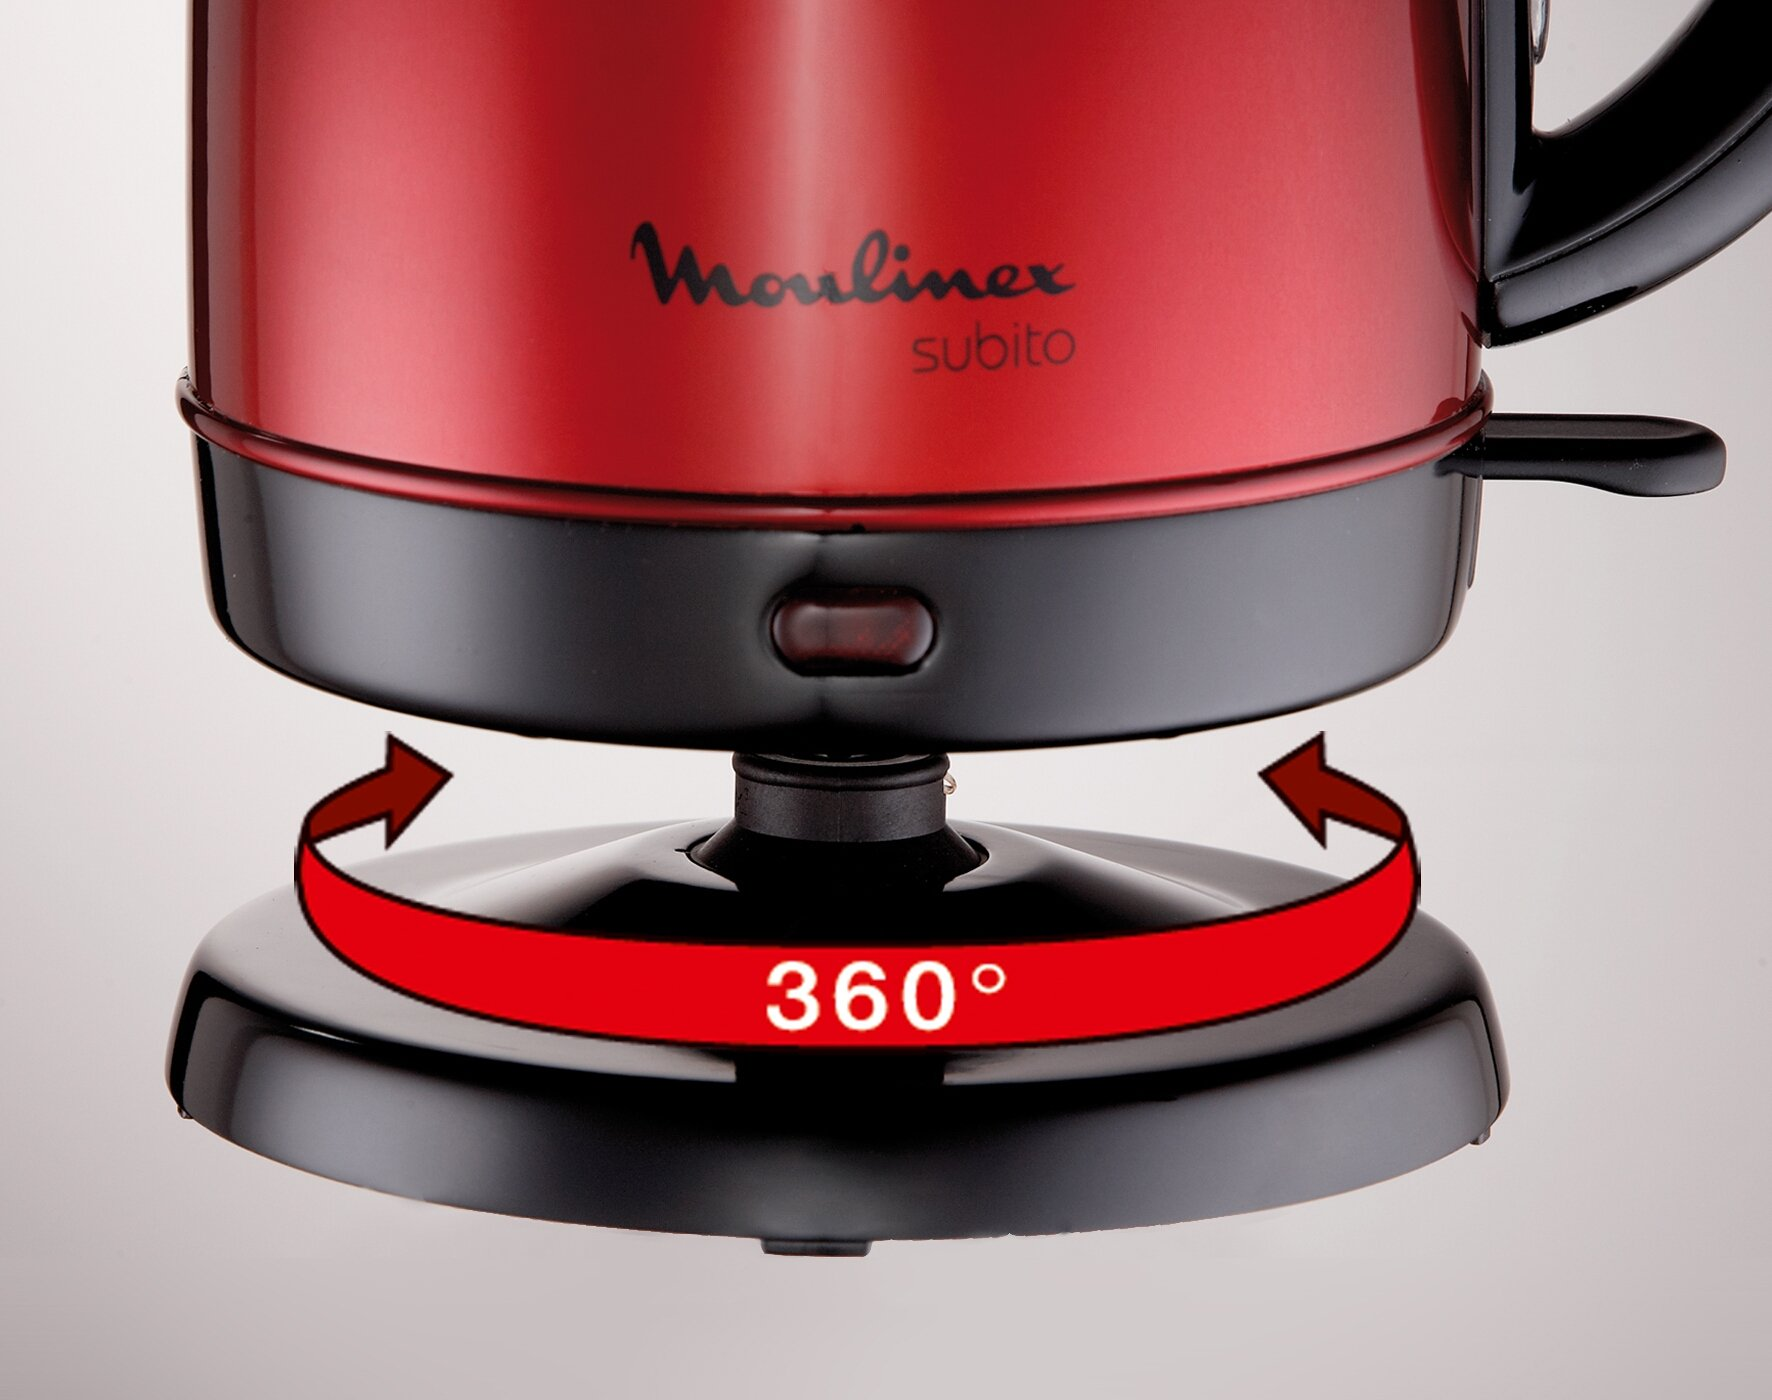 Moulinex-BY5305-Wasserkocher-Subito-17-l-2400-Watt-metallic-rot